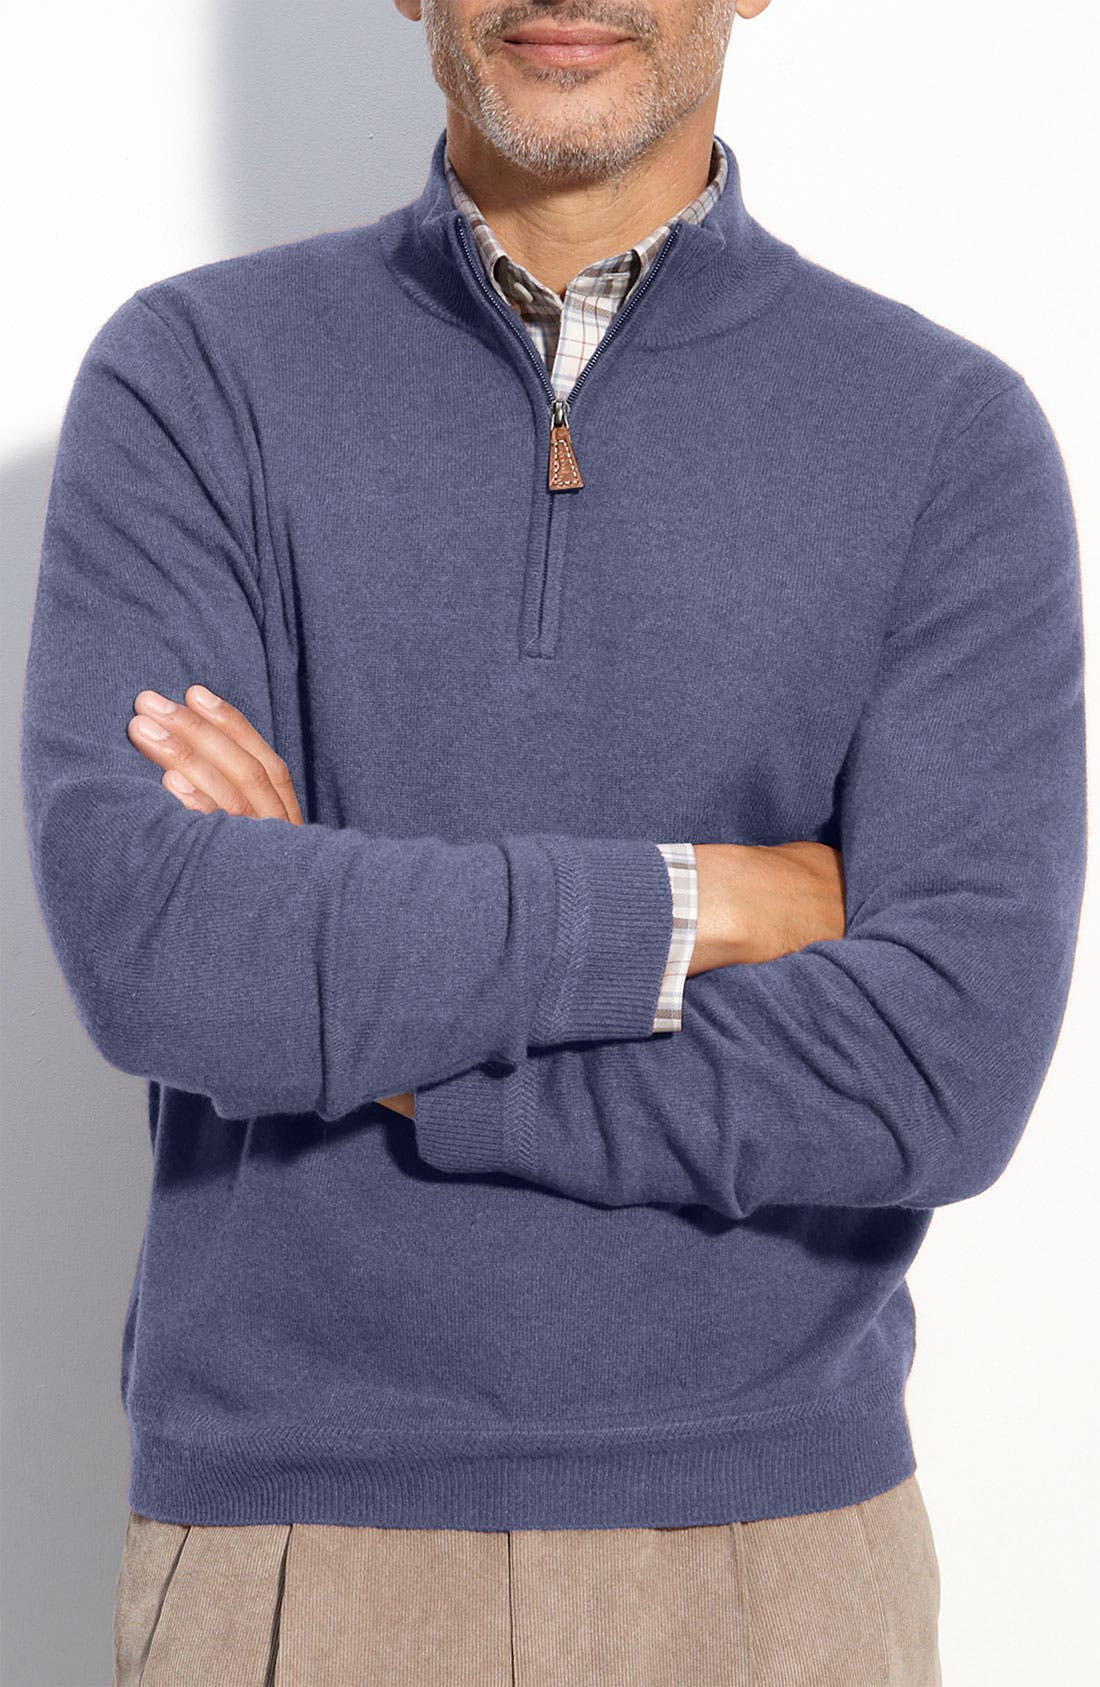 Main Image - John W. Nordstrom® Cashmere Sweater